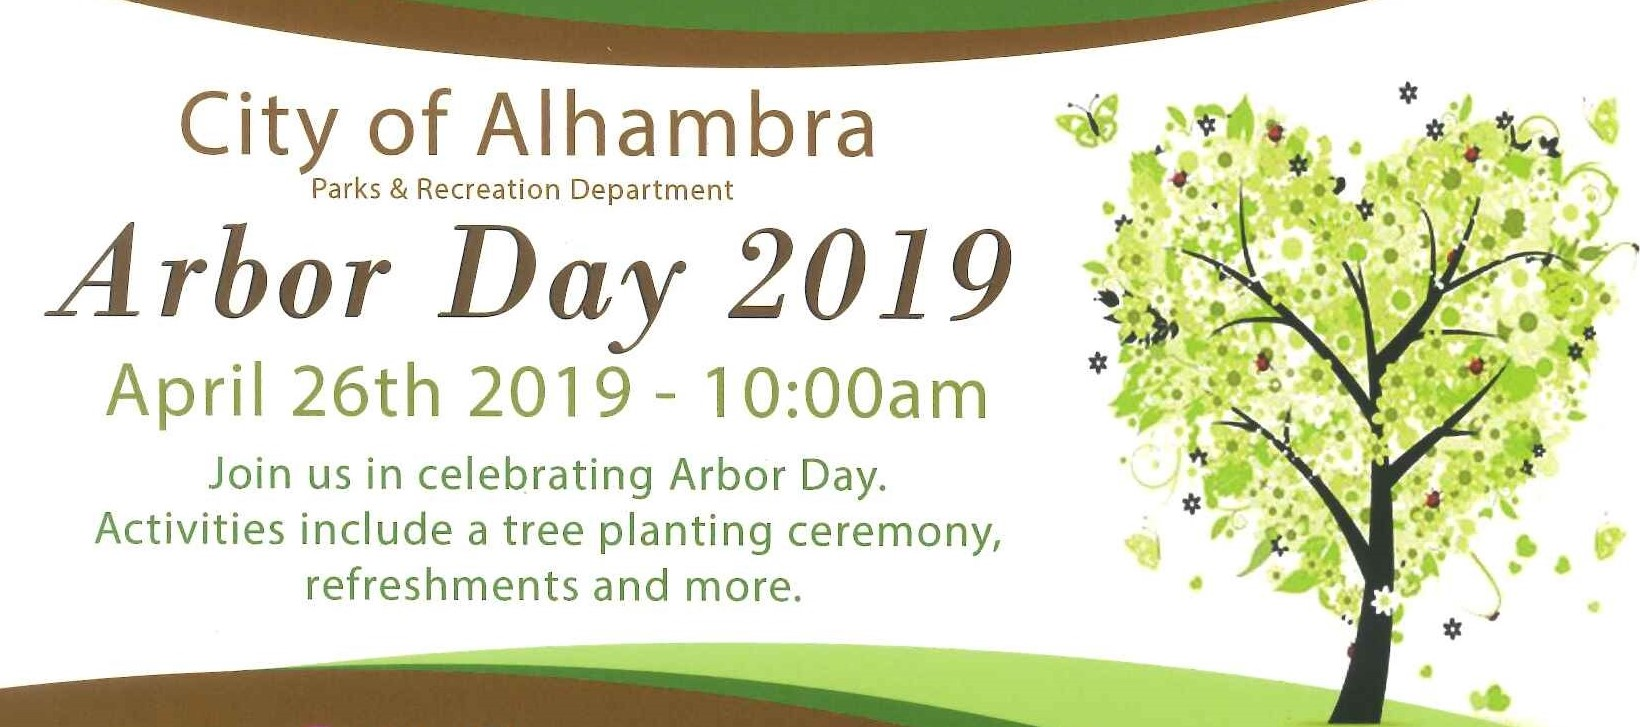 City of Alhambra Arbor Day 2019 April 26, 2019 10:00 am join activities for tree planting and refreshments